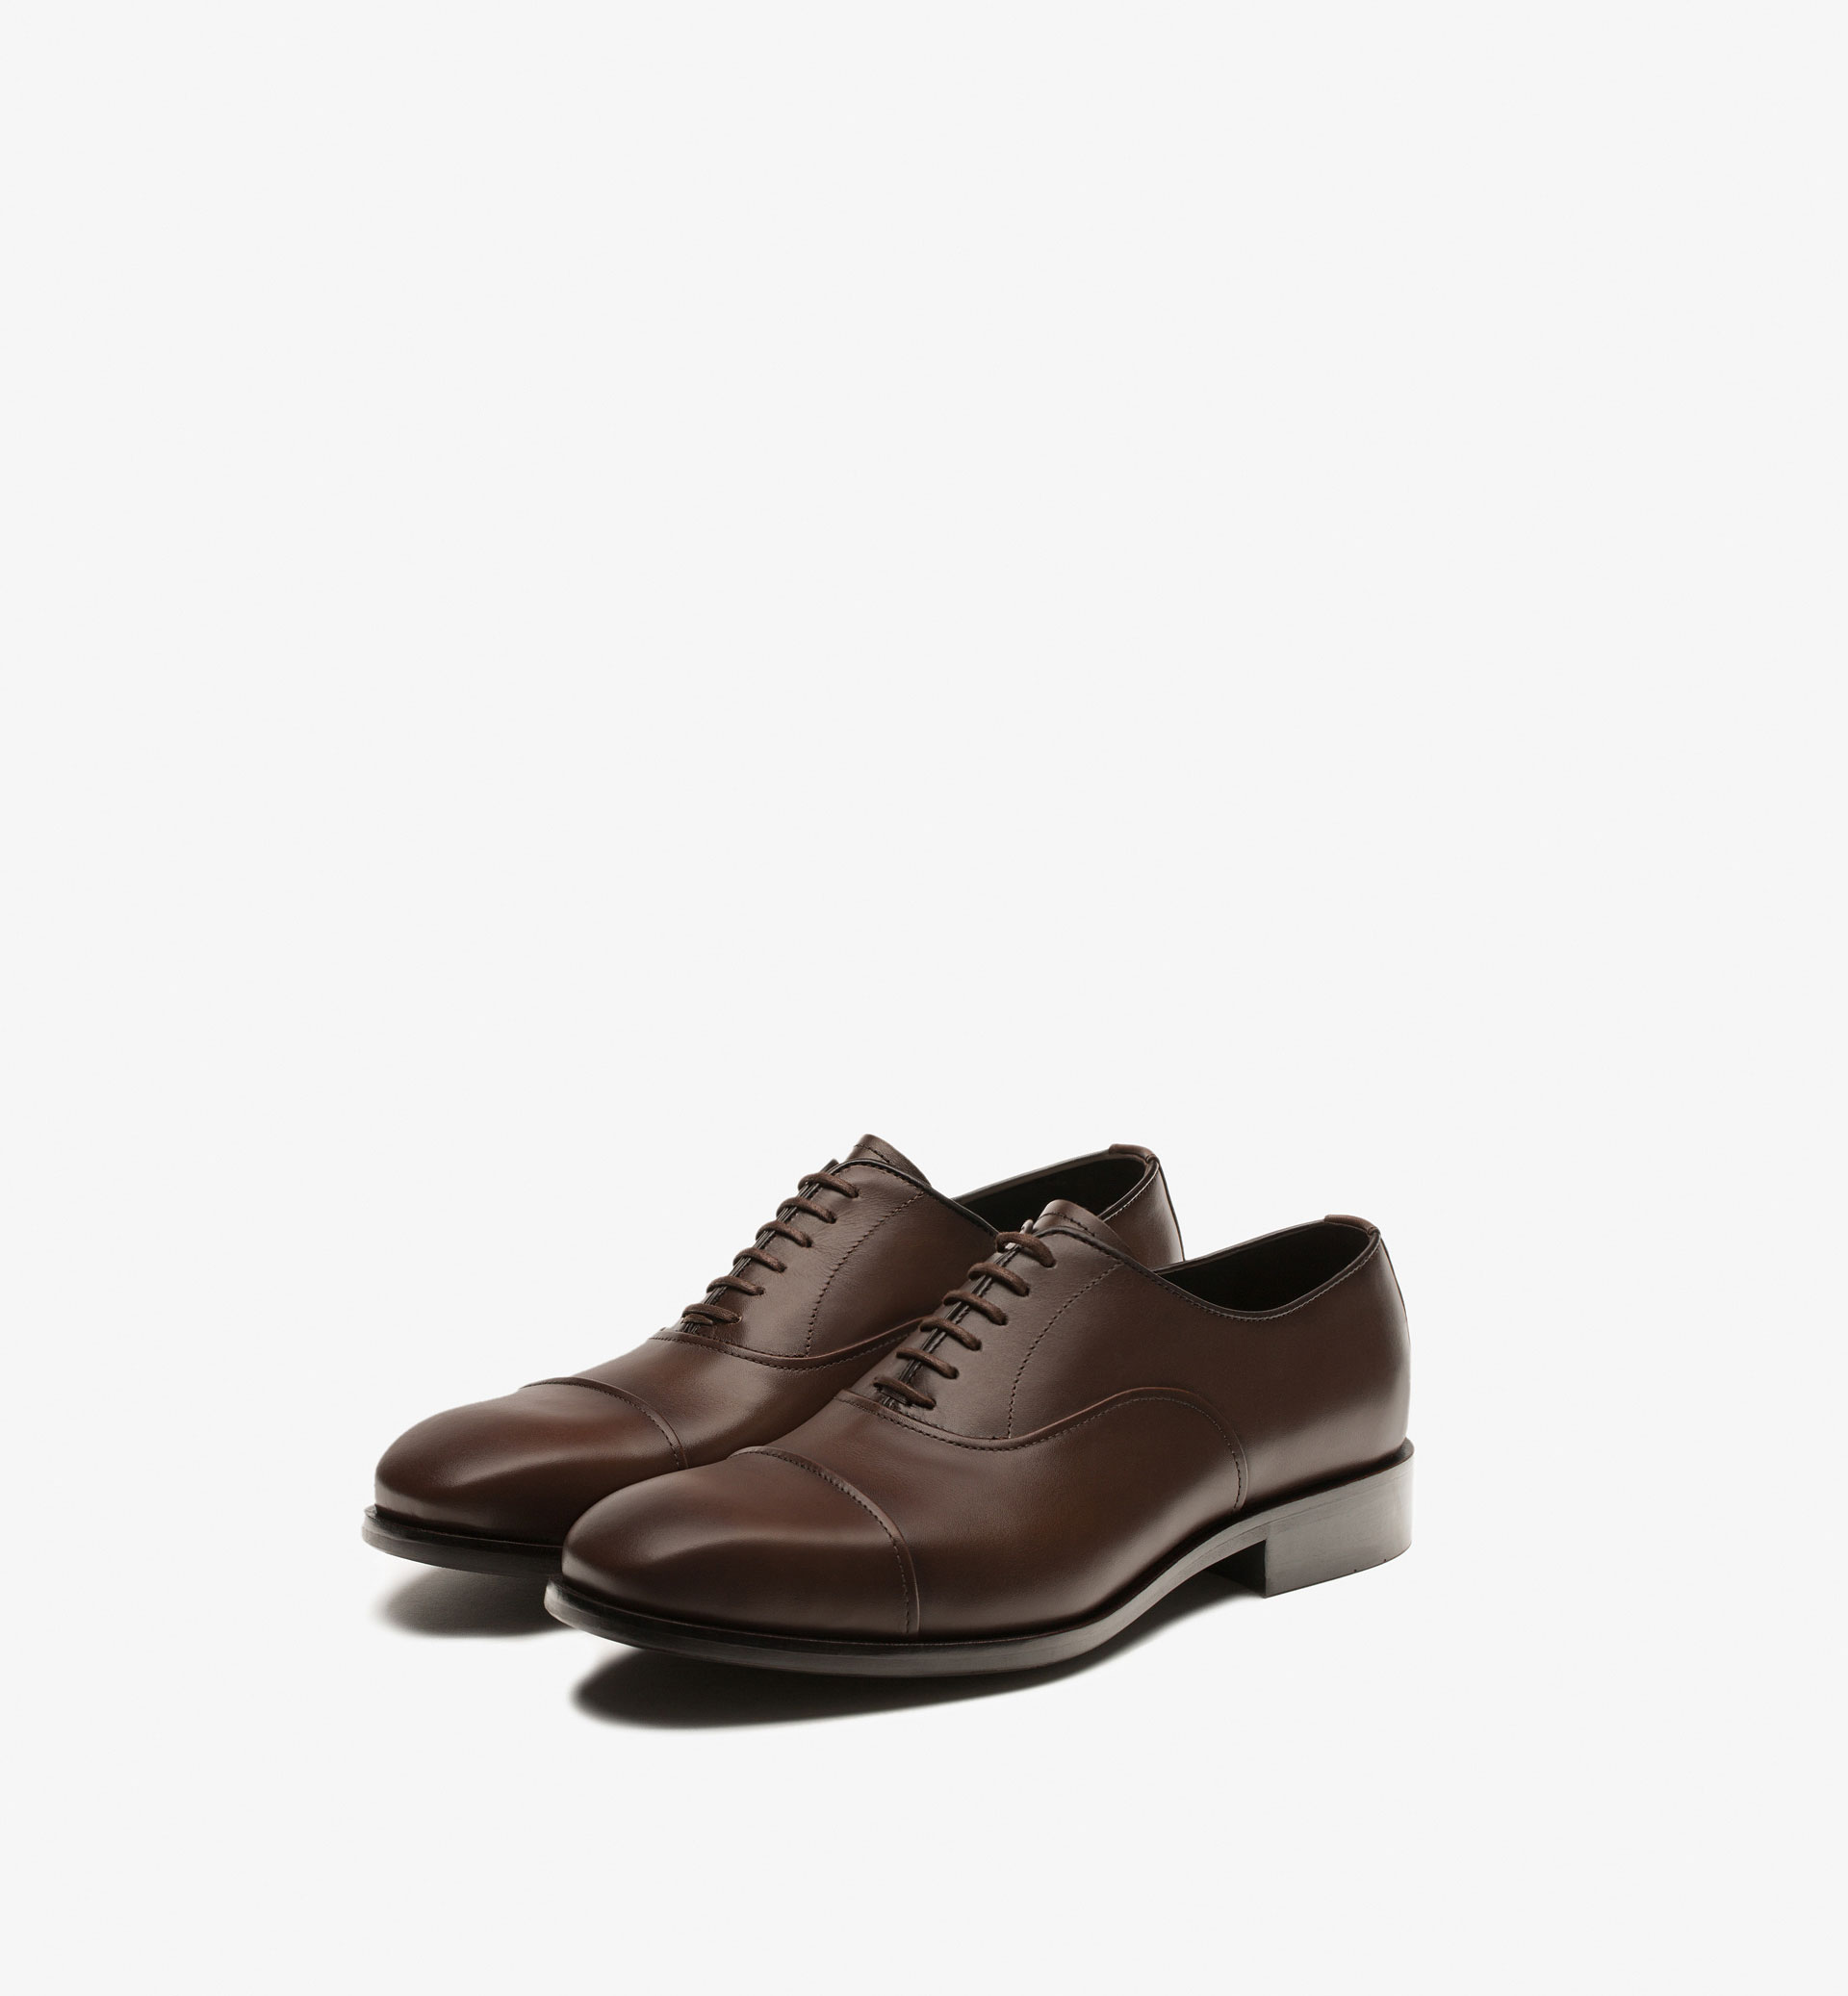 SMART OXFORD SHOES